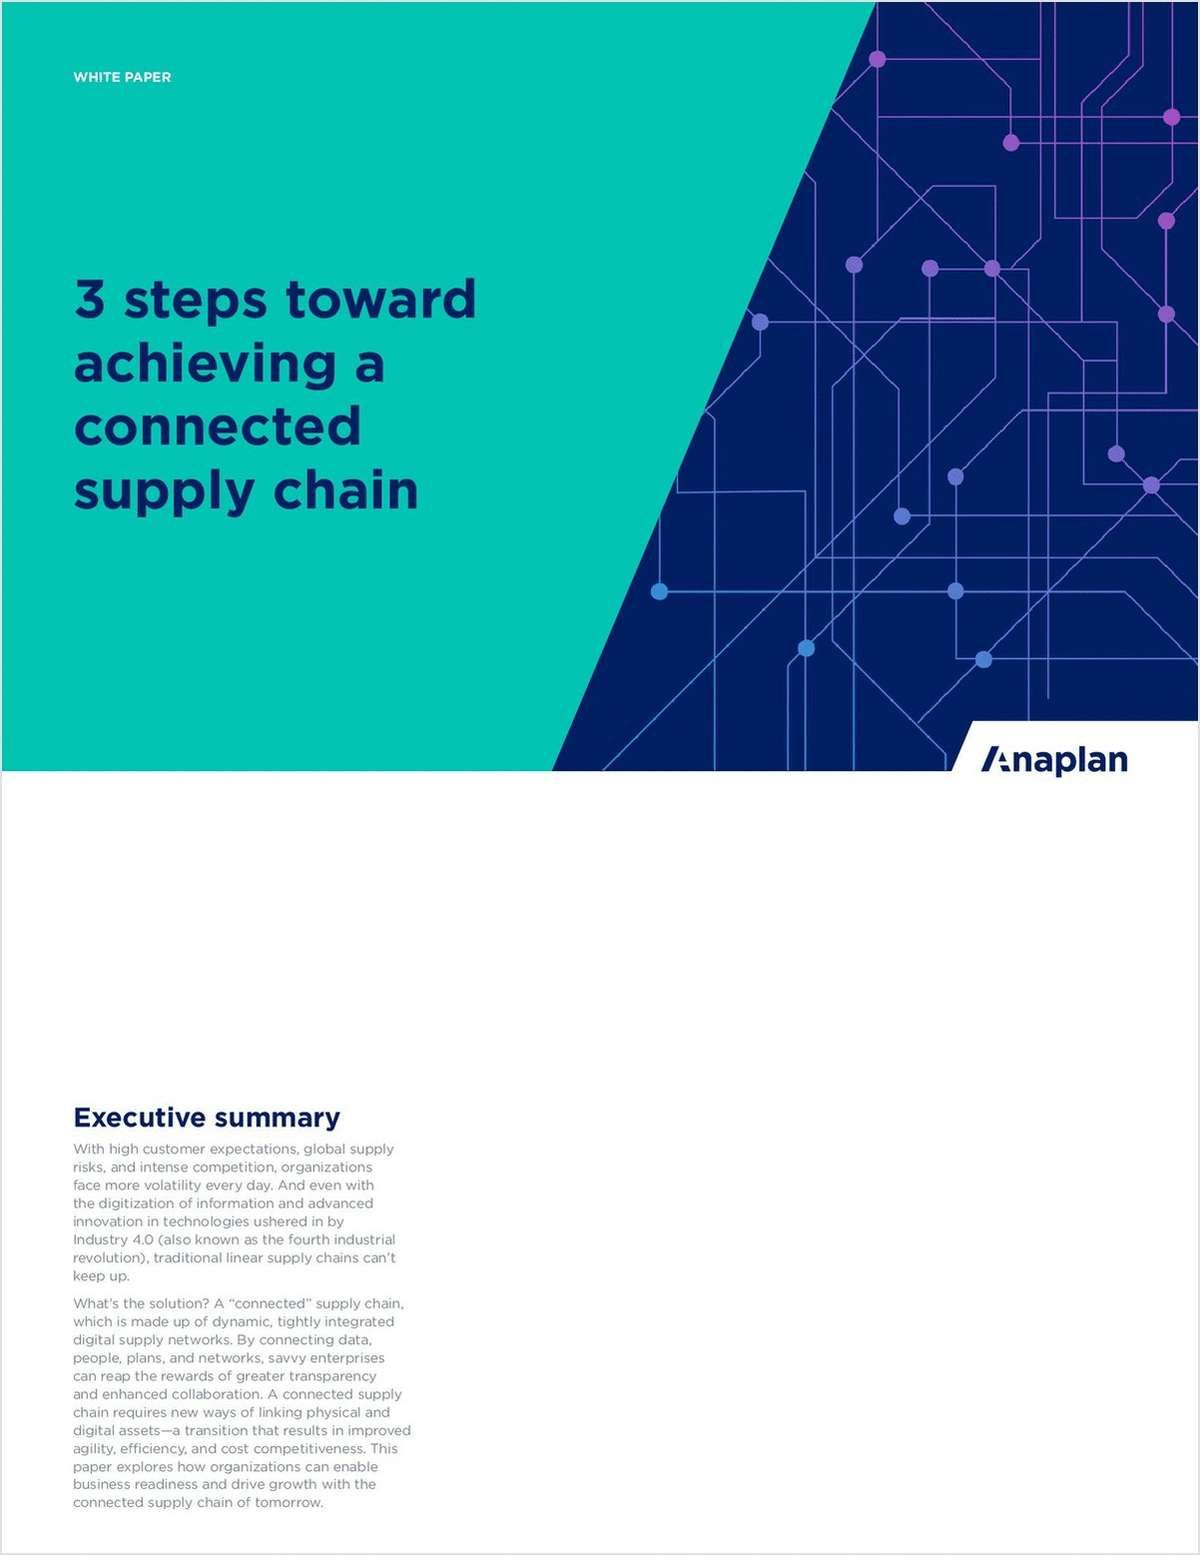 3 Steps Toward Achieving a Connected Supply Chain